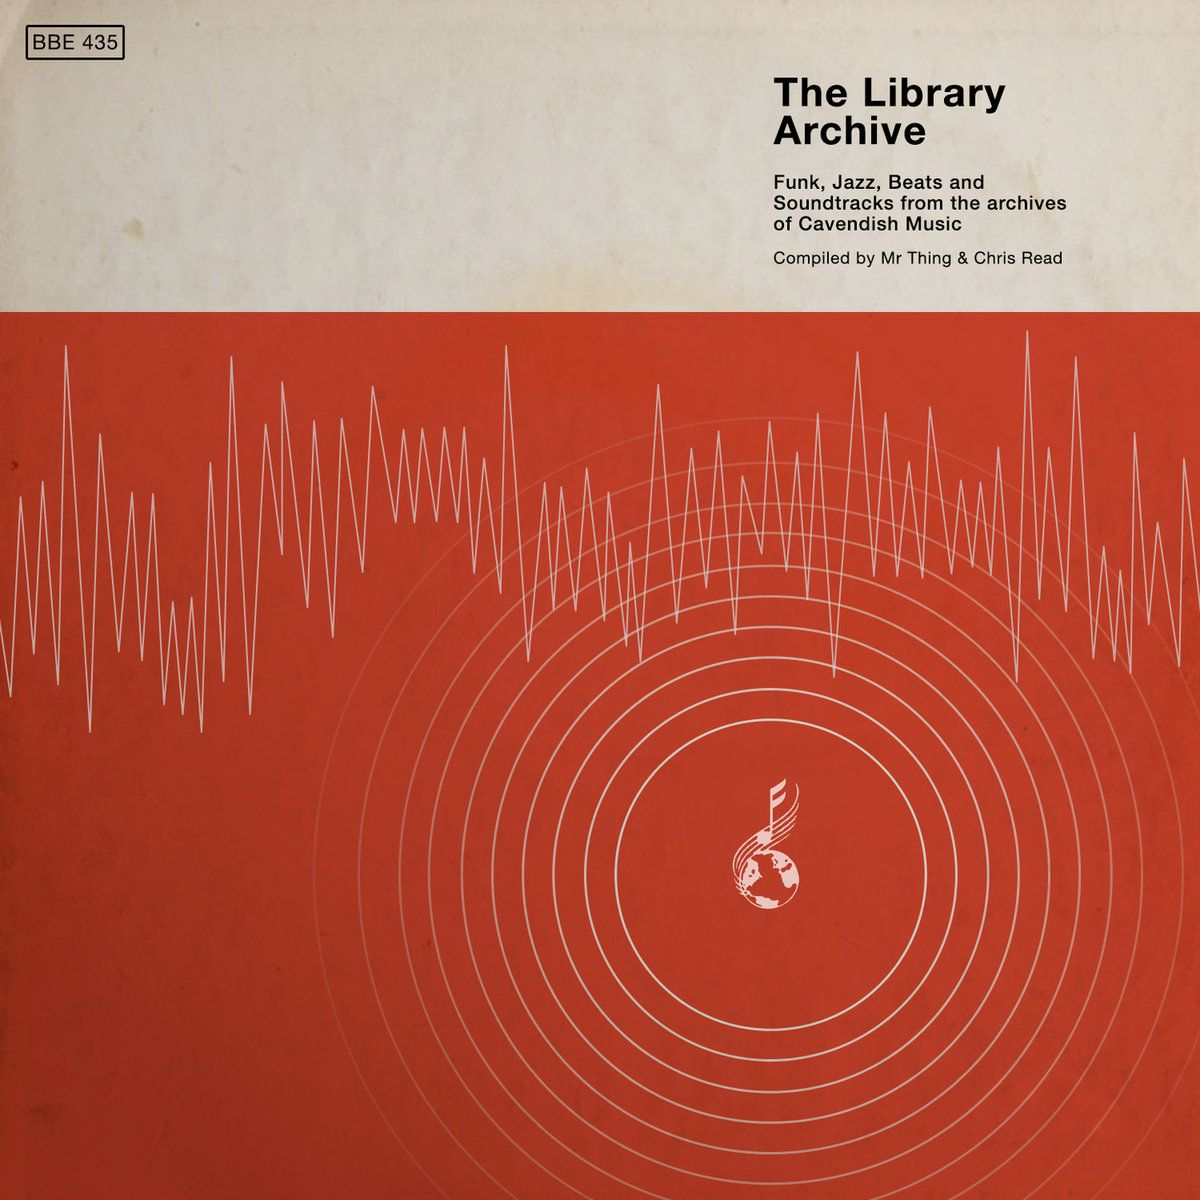 The Library Archive Funk Jazz Beats And Soundtracks From The Vaults Of Cavendish Music Bbe